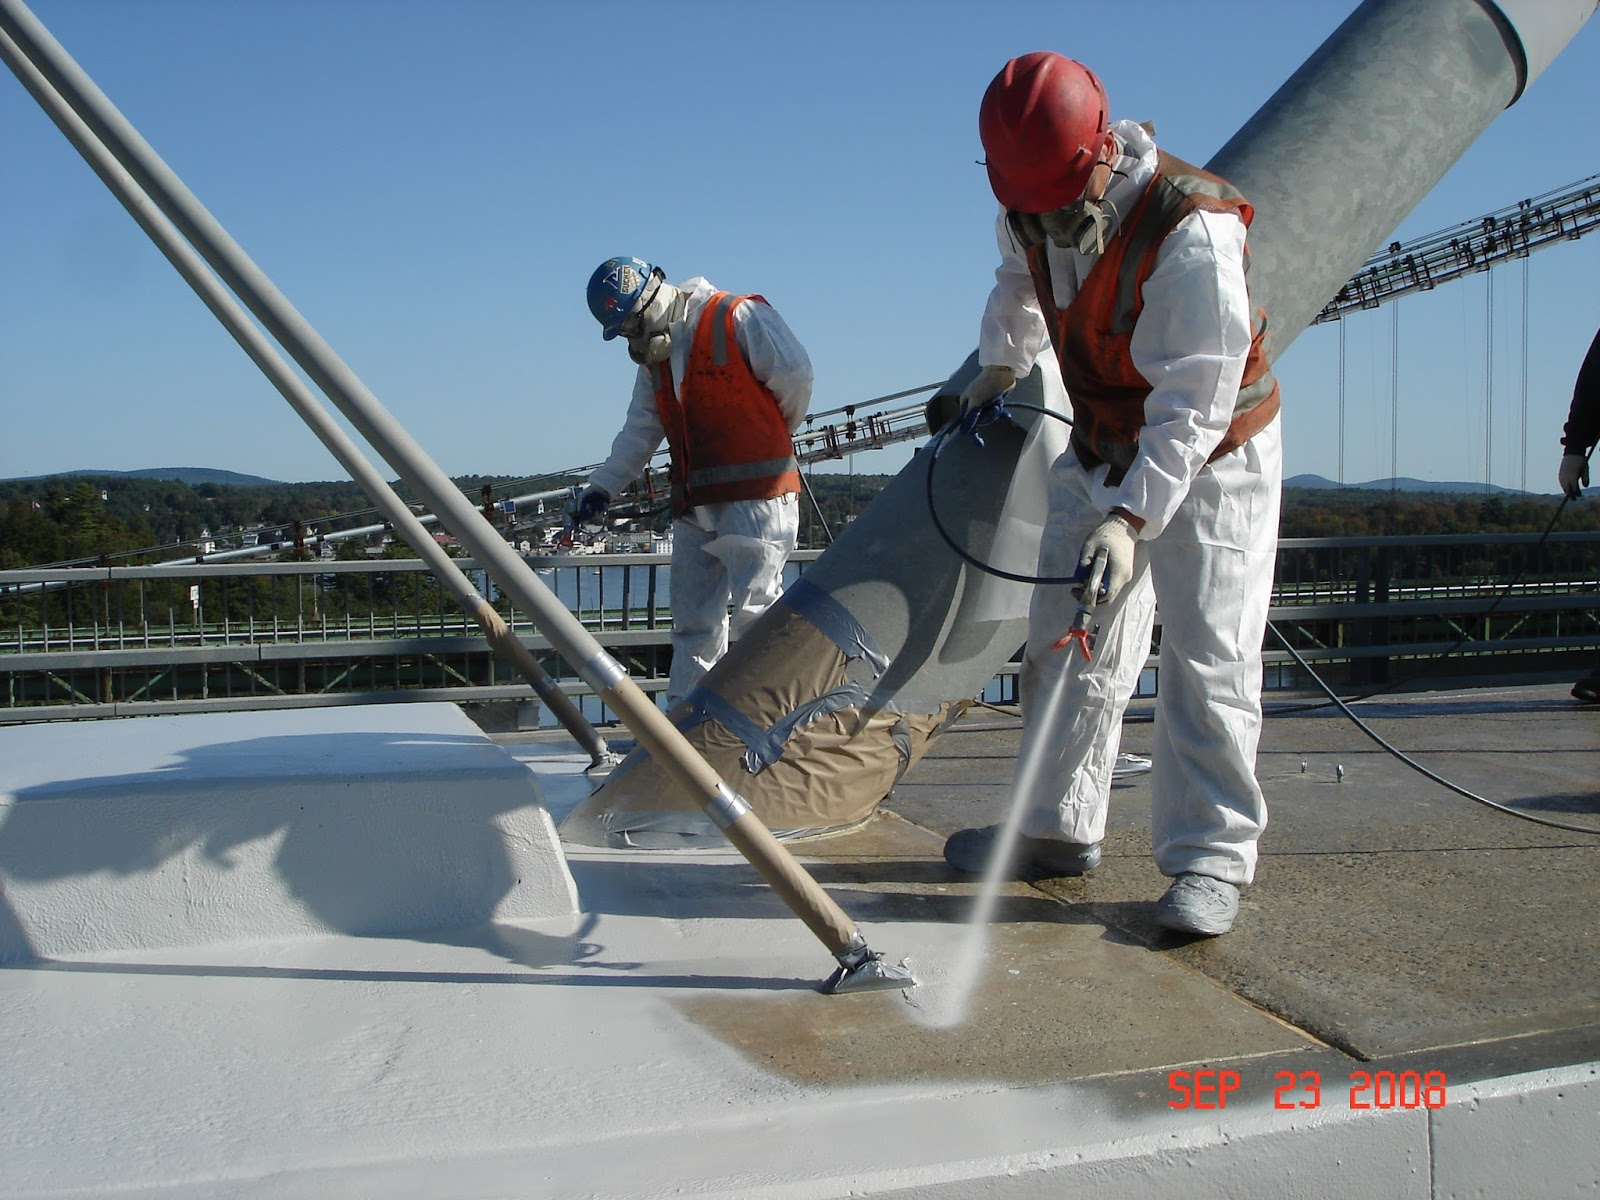 Waterproofing Companies: Waterproofing Companies In Uae